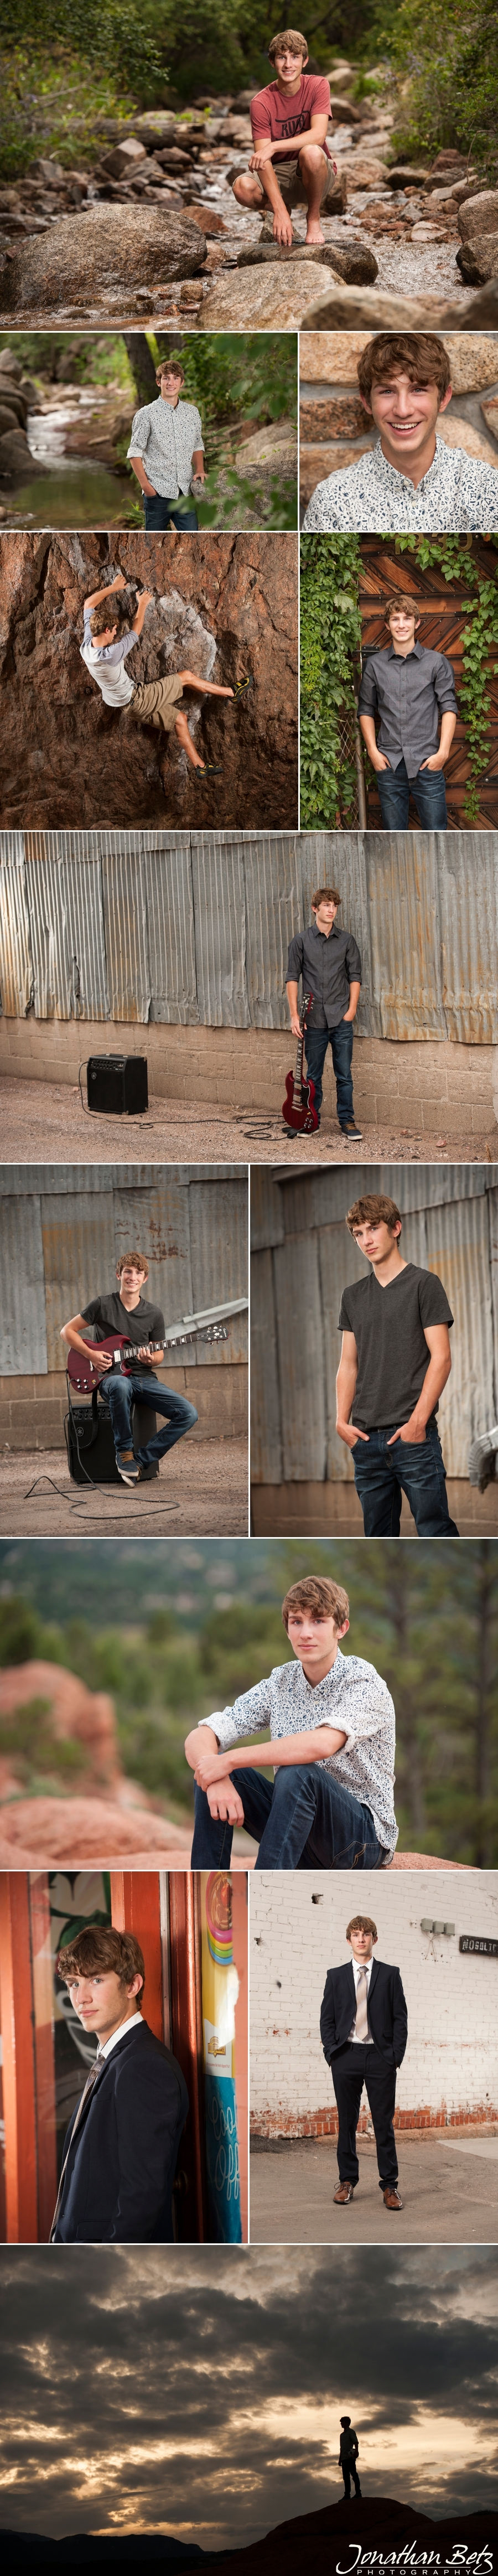 Castle Rock & Colorado Springs High School Senior Photographer Jonathan Betz Photography